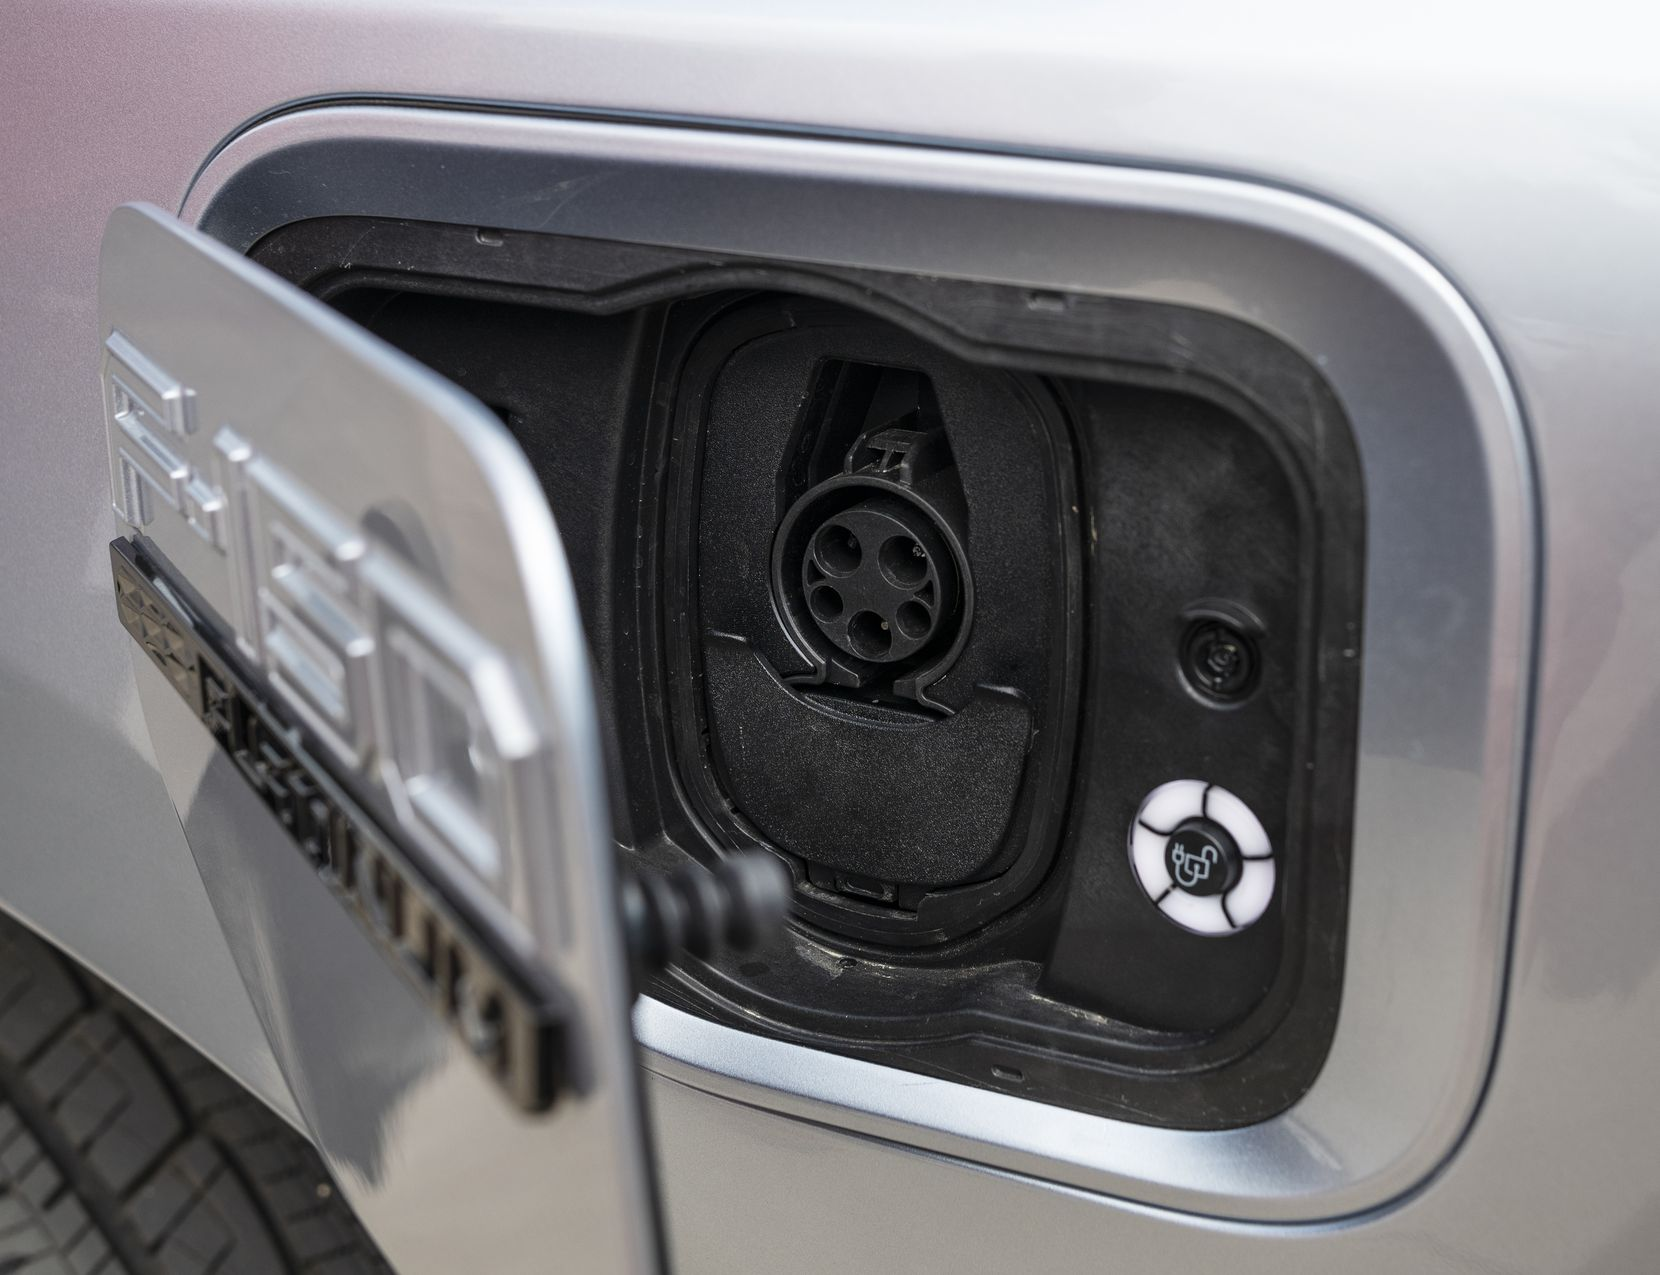 The charging plugin for the new electric Ford F-150 Lightning truck.